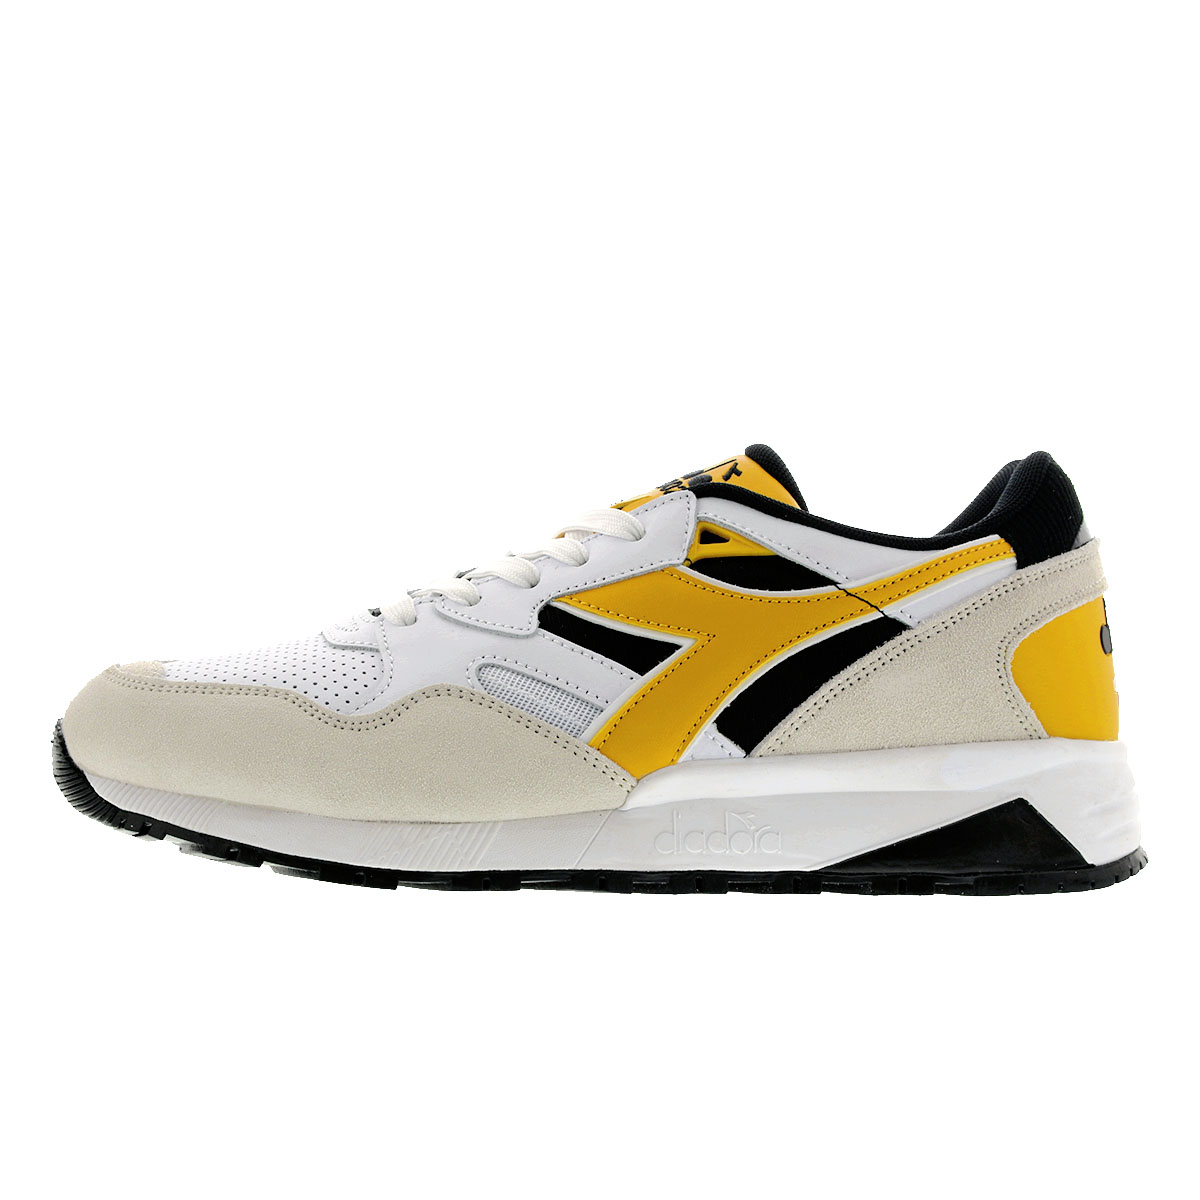 f648bf7e DIADORA N9002 BETA Deer gong N9002 beta BLACK/WHITE/BANANA 175498-c8224